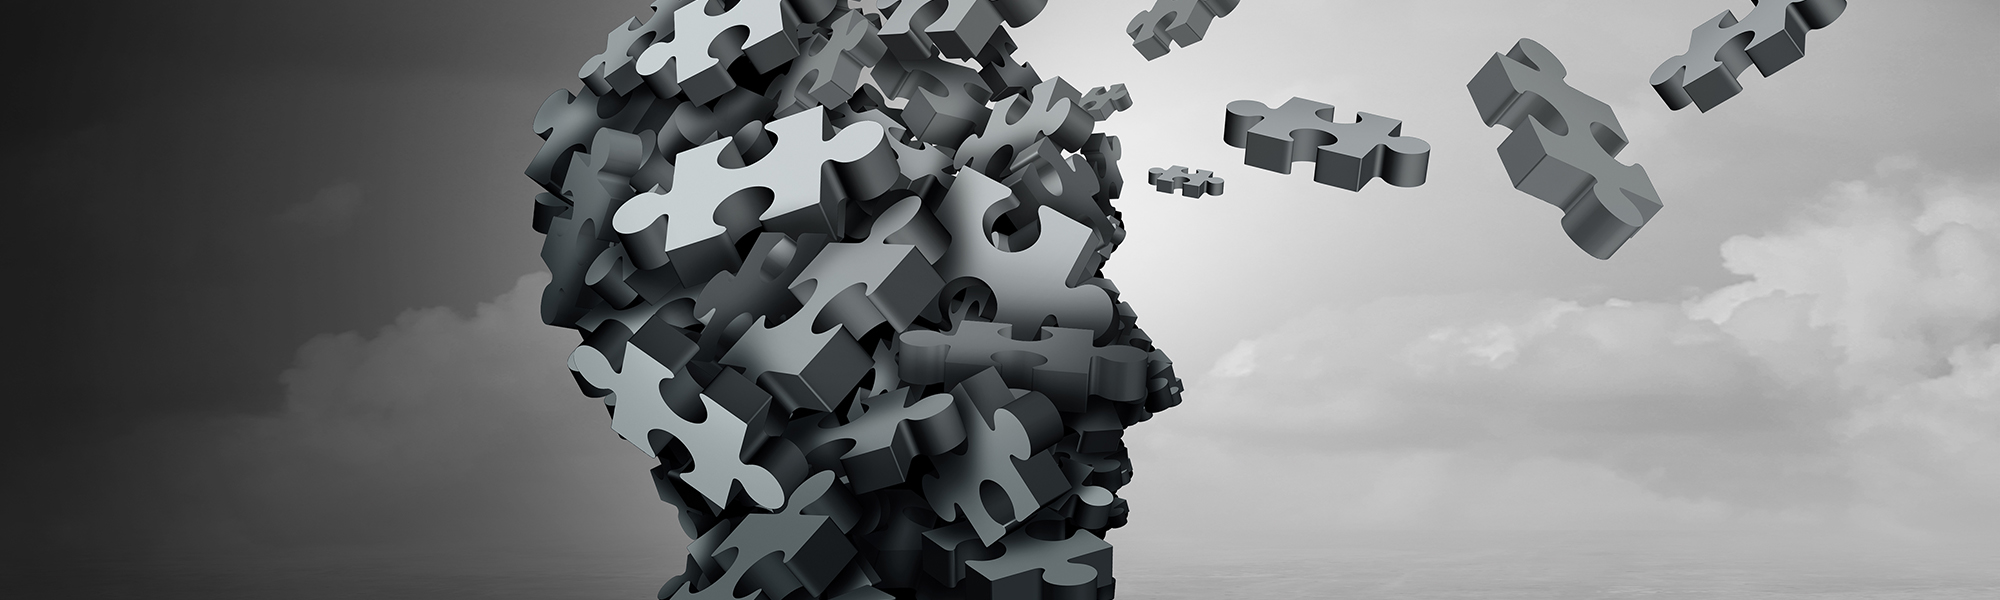 Parkinson disease and parkinson's disorder symptoms as a human head made of crumpled paper with a missing jigsaw puzzle representing elderly degenerative neurology illness in a 3D illustration.